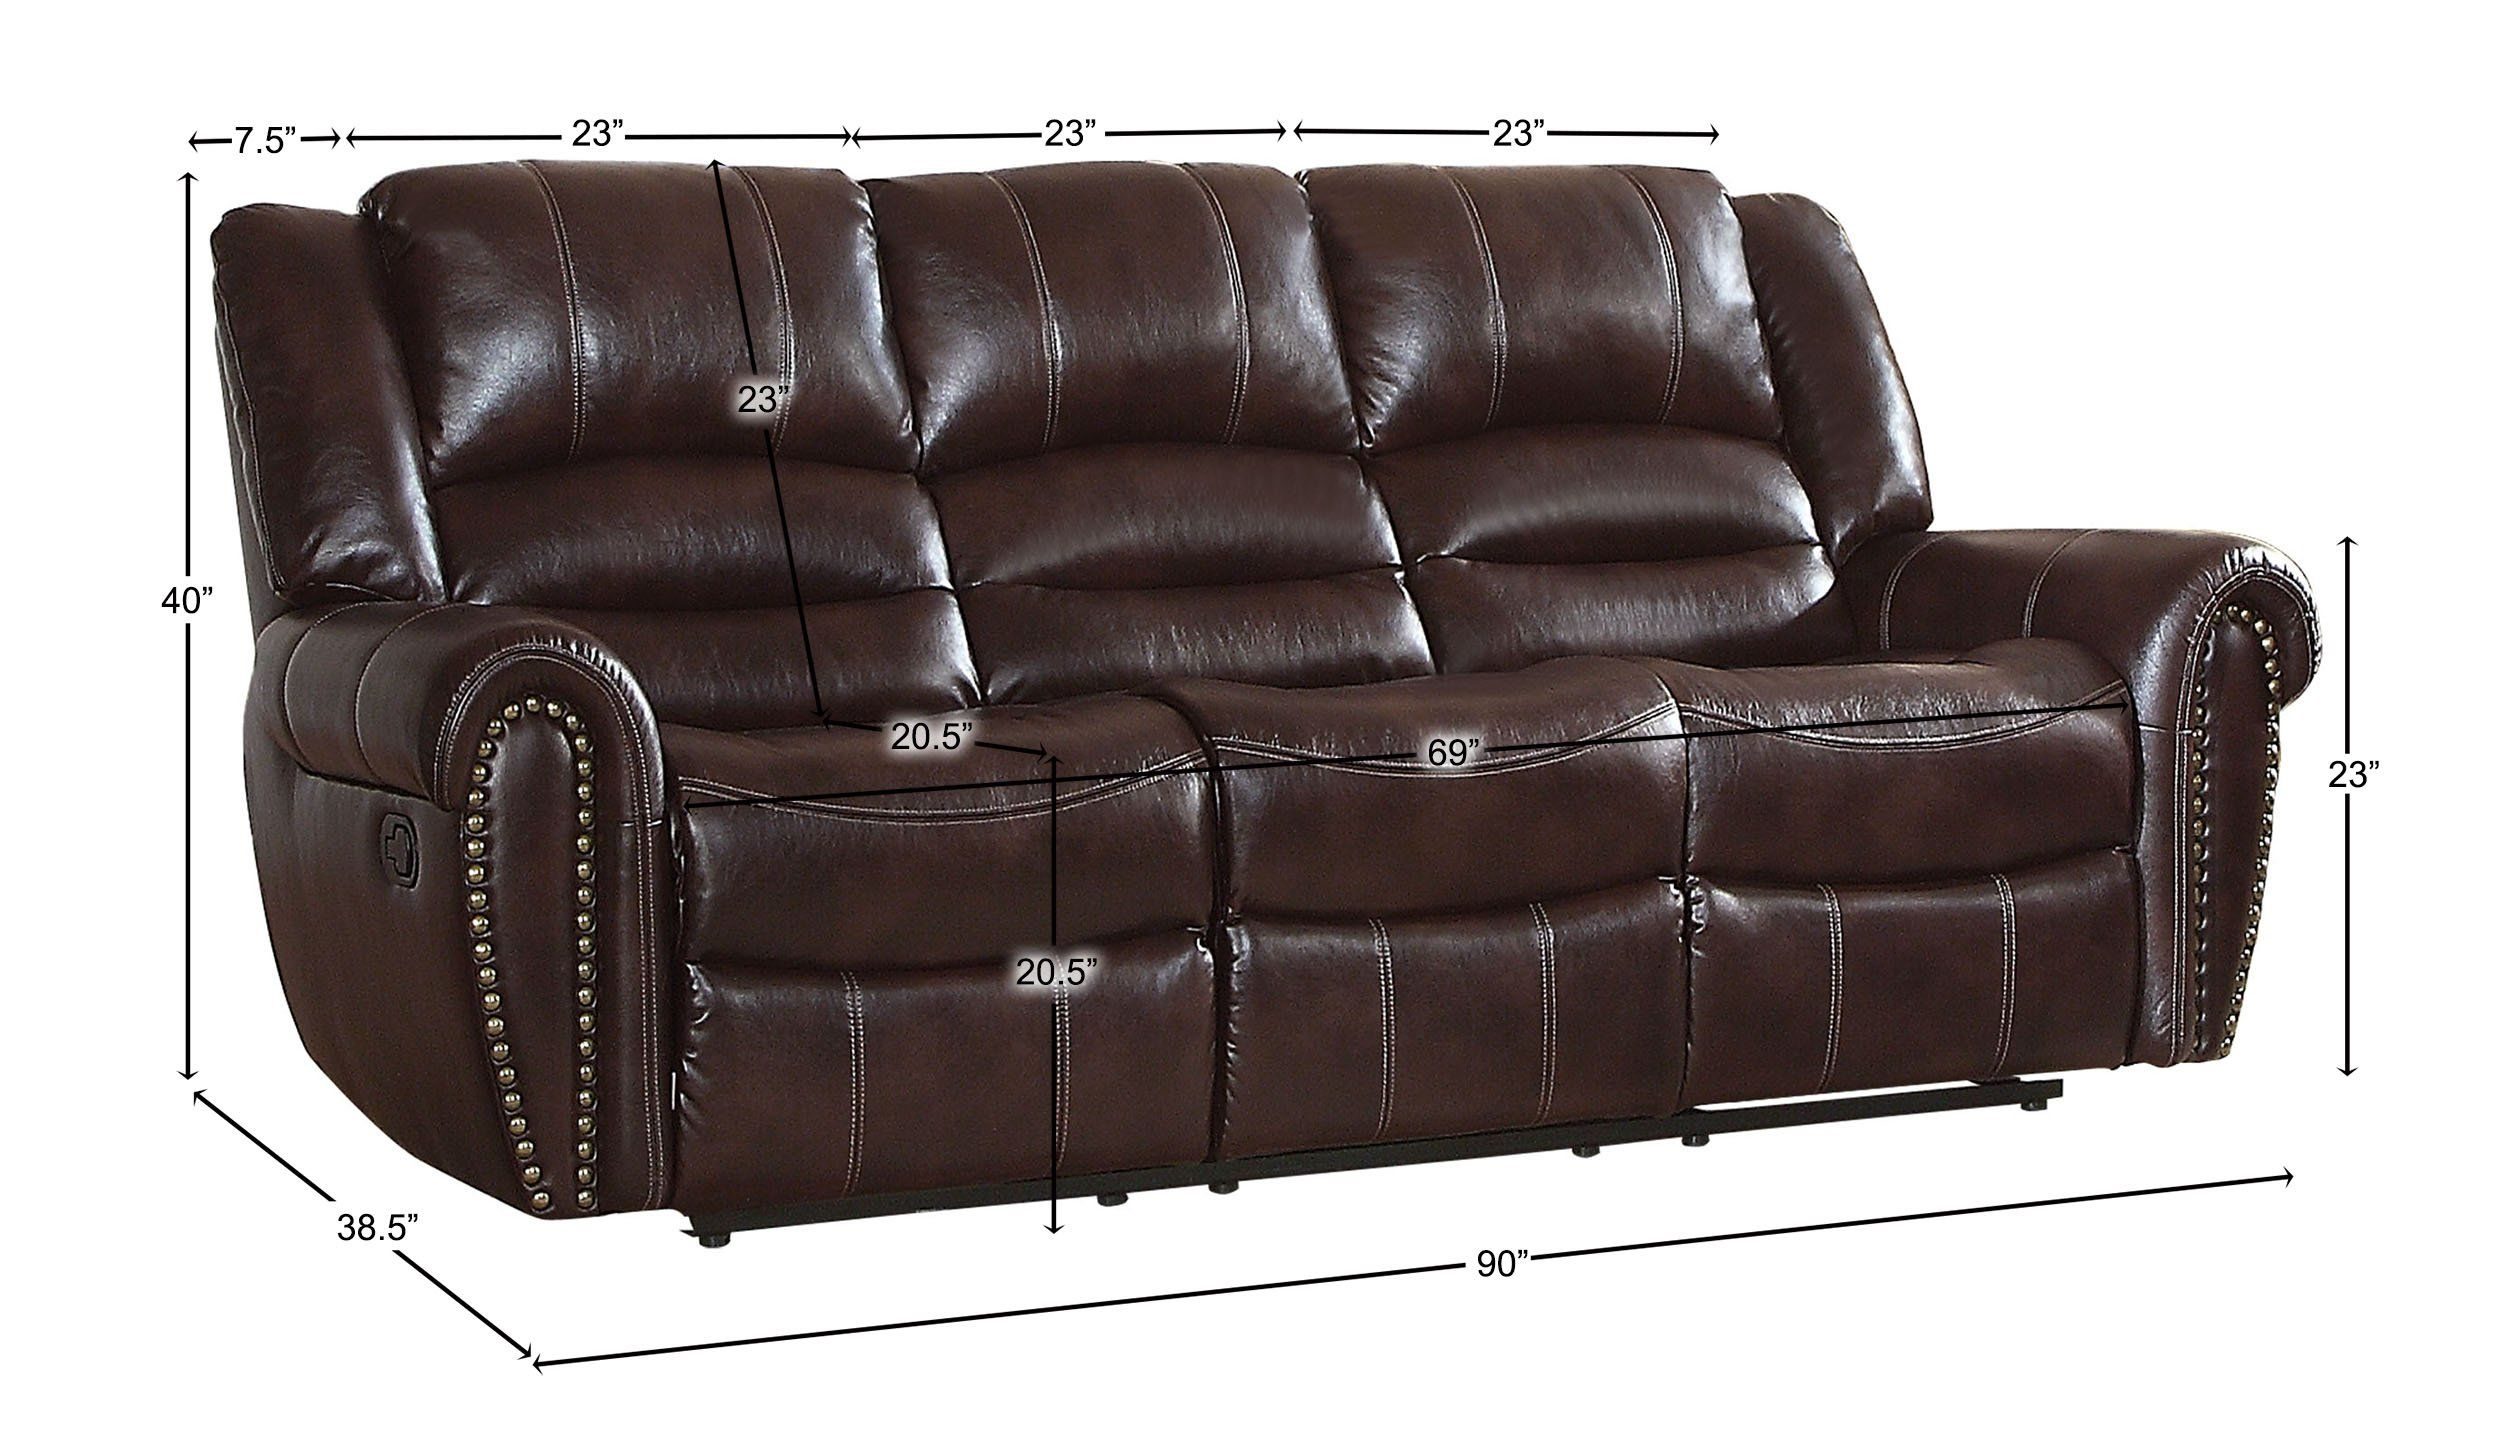 Homelegance Center Hill 90 Double Reclining Sofa Dark Brown Leather Gel Match You Can Find More Details By Visiting The Image Link It Is An Reclining Sofa Leather Reclining Sofa Sofa